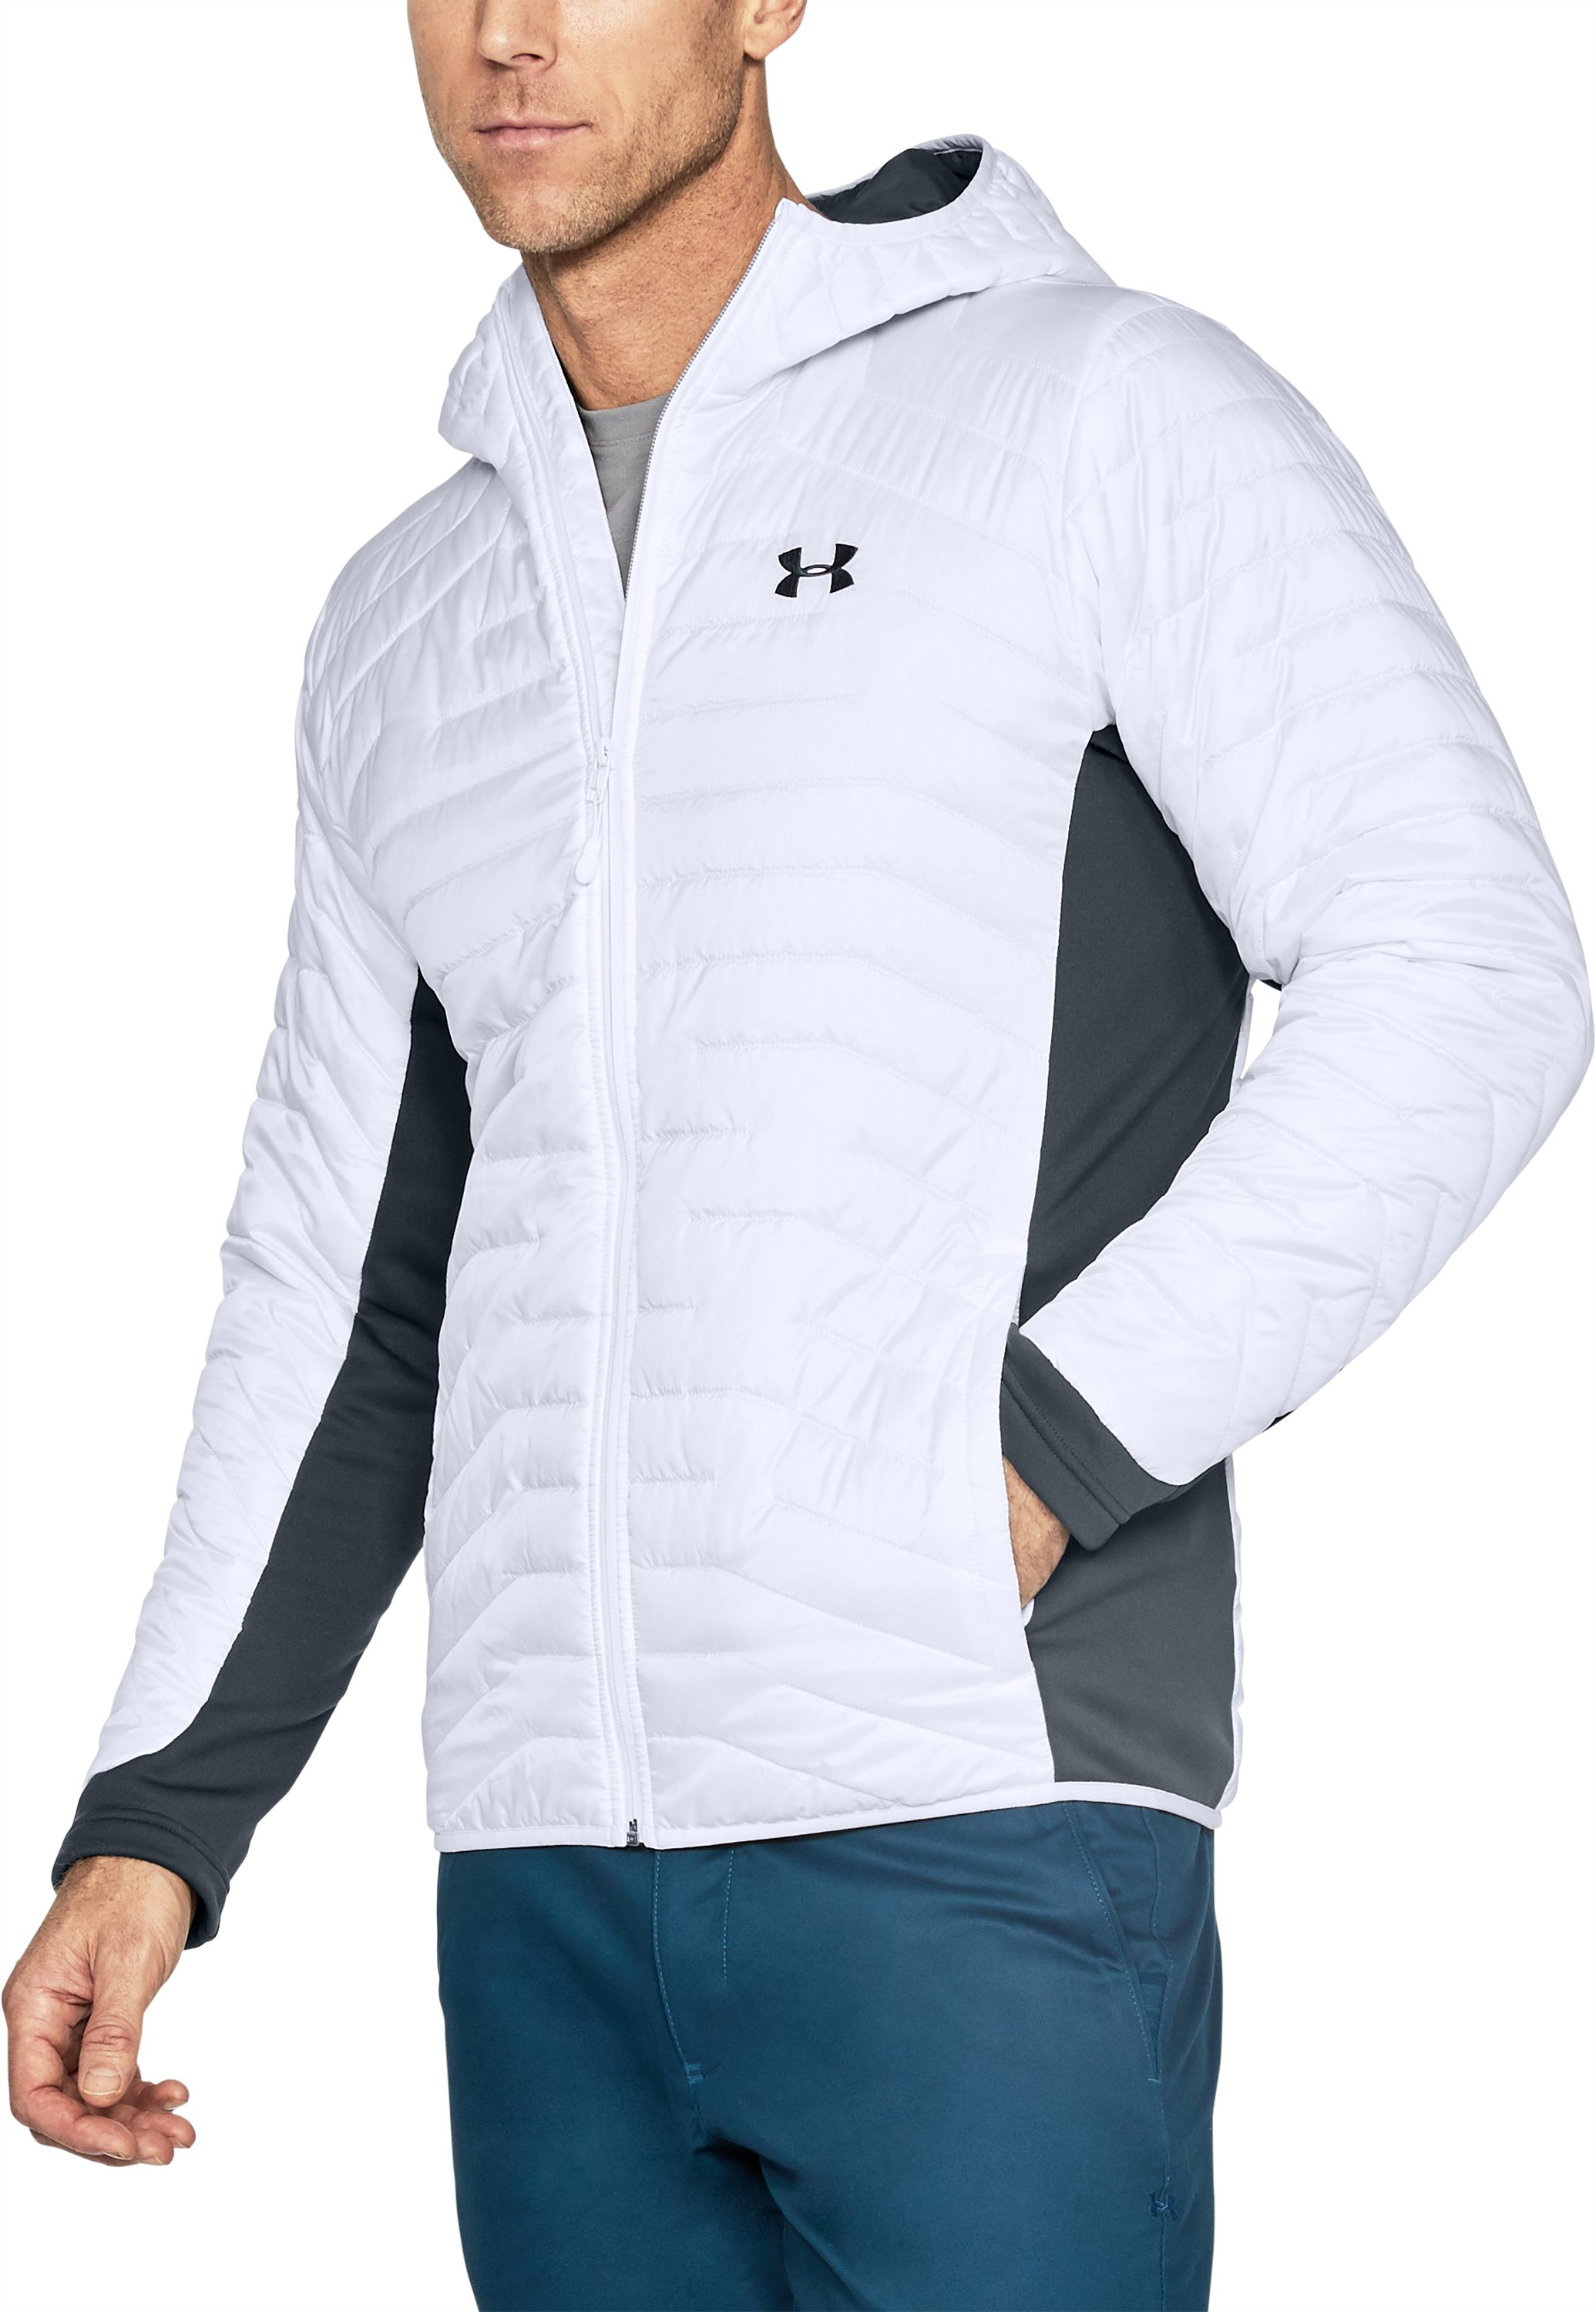 warm puffer jackets Men's ColdGear® Reactor Hybrid Jacket It's <strong>warm</strong> too.